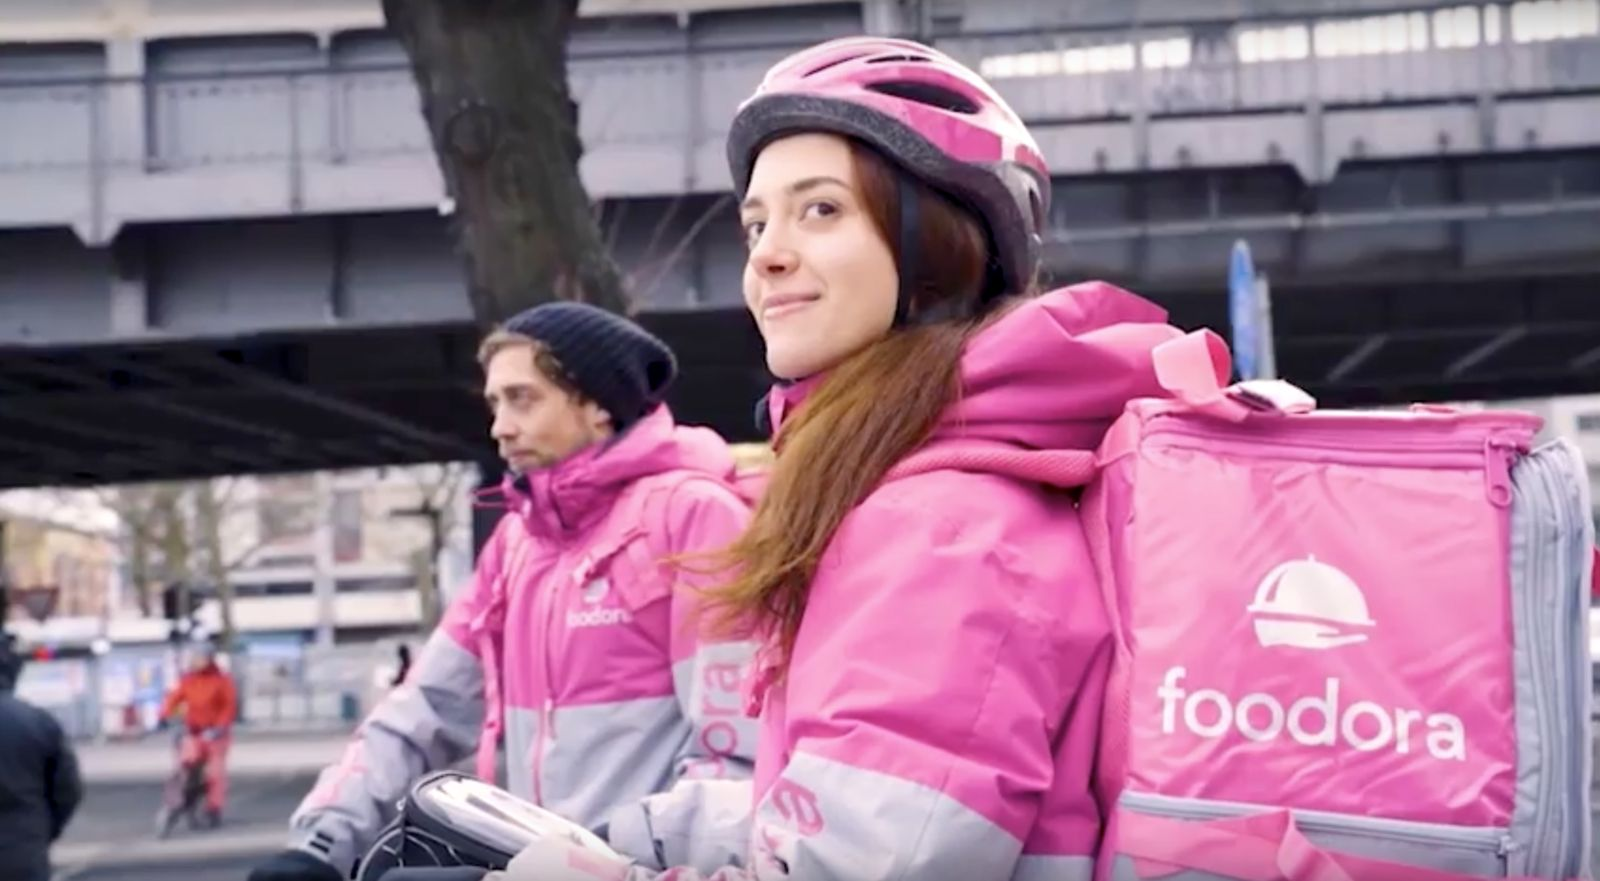 Delivery Hero / foodora